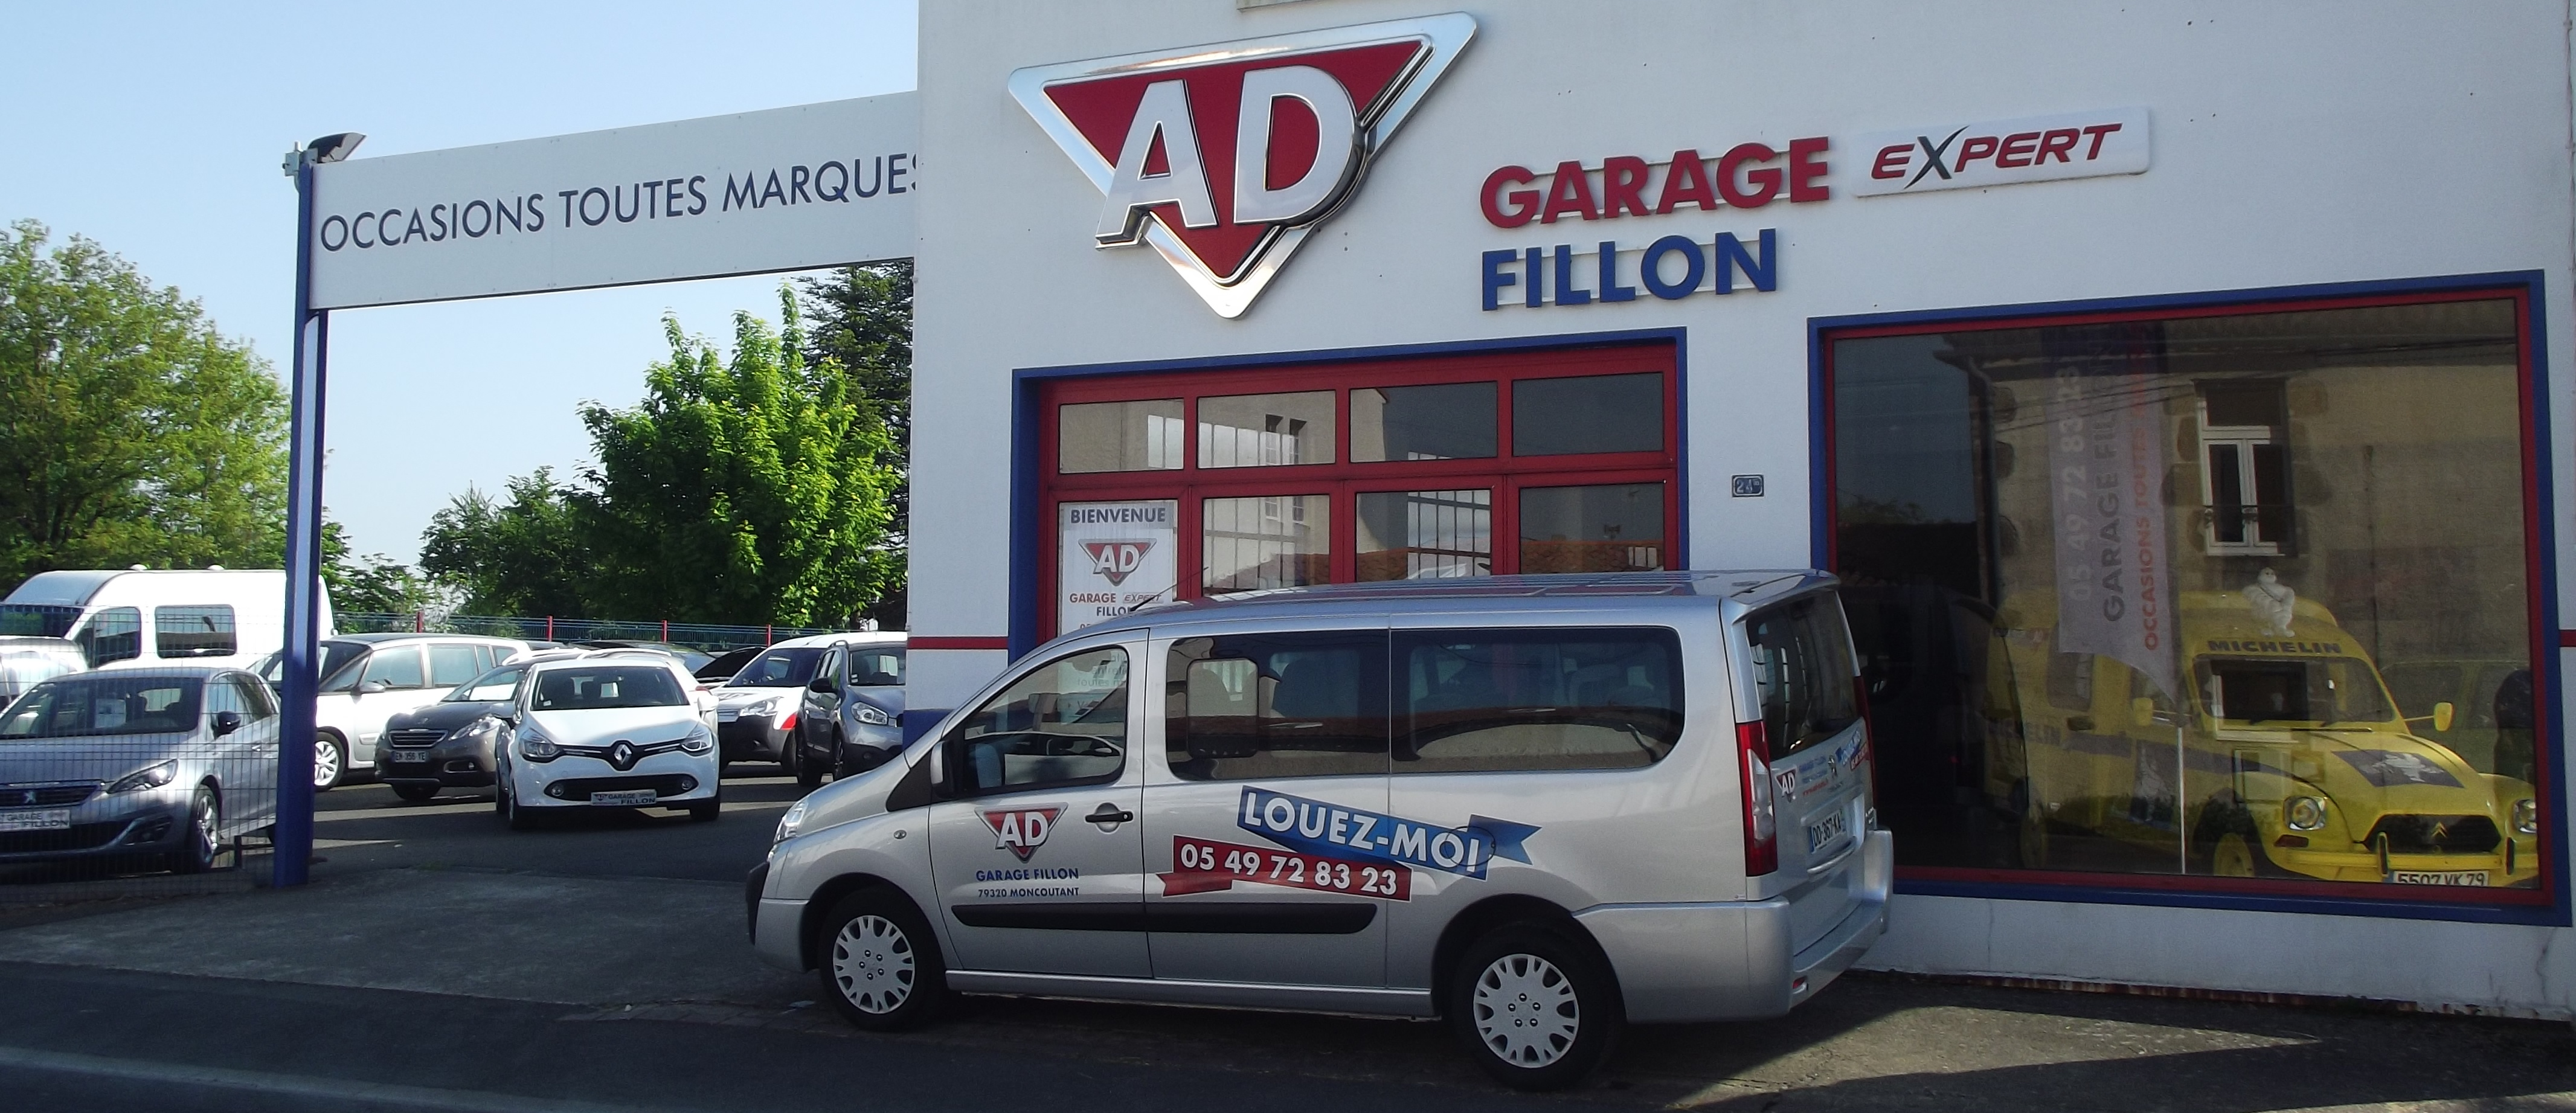 Garage fillon voiture occasion moncoutant vente auto for Garage vente voiture occasion gironde